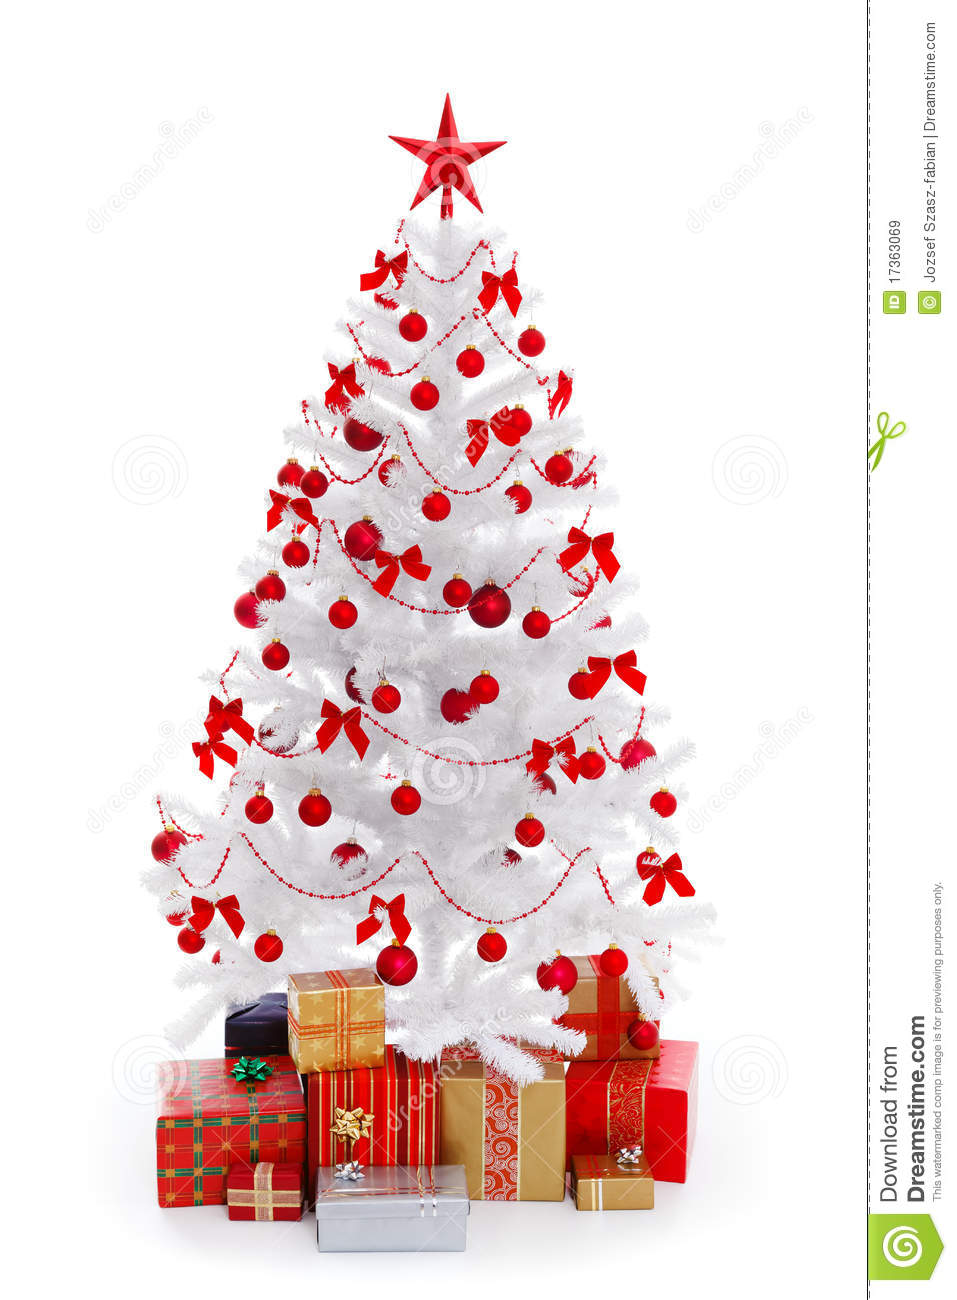 white christmas tree with gifts and red decoration - White Christmas Tree With Red Decorations